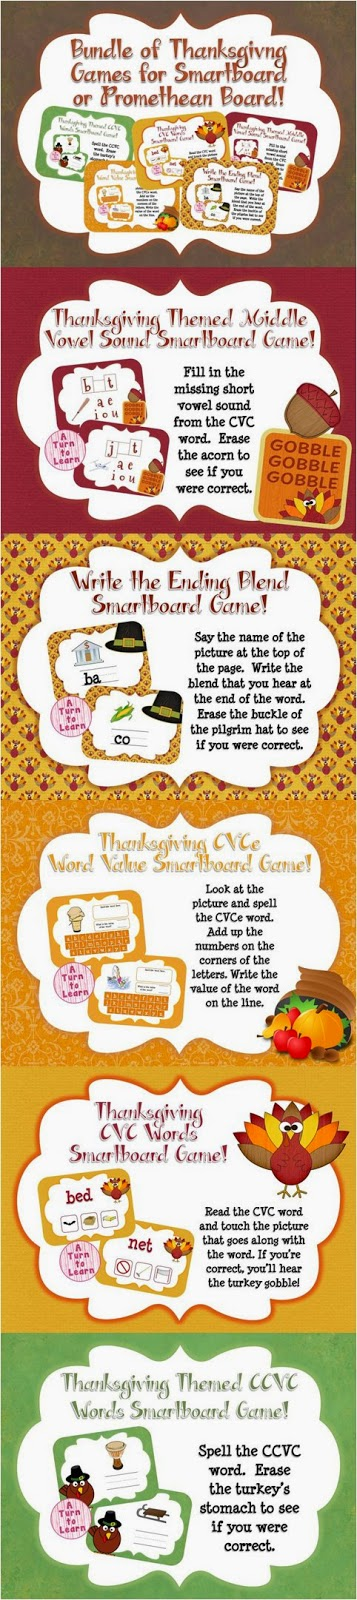 These thanksgiving themed smartboard/promethean board games are perfect for your classroom - not only are they adorable, but they're self checking also!